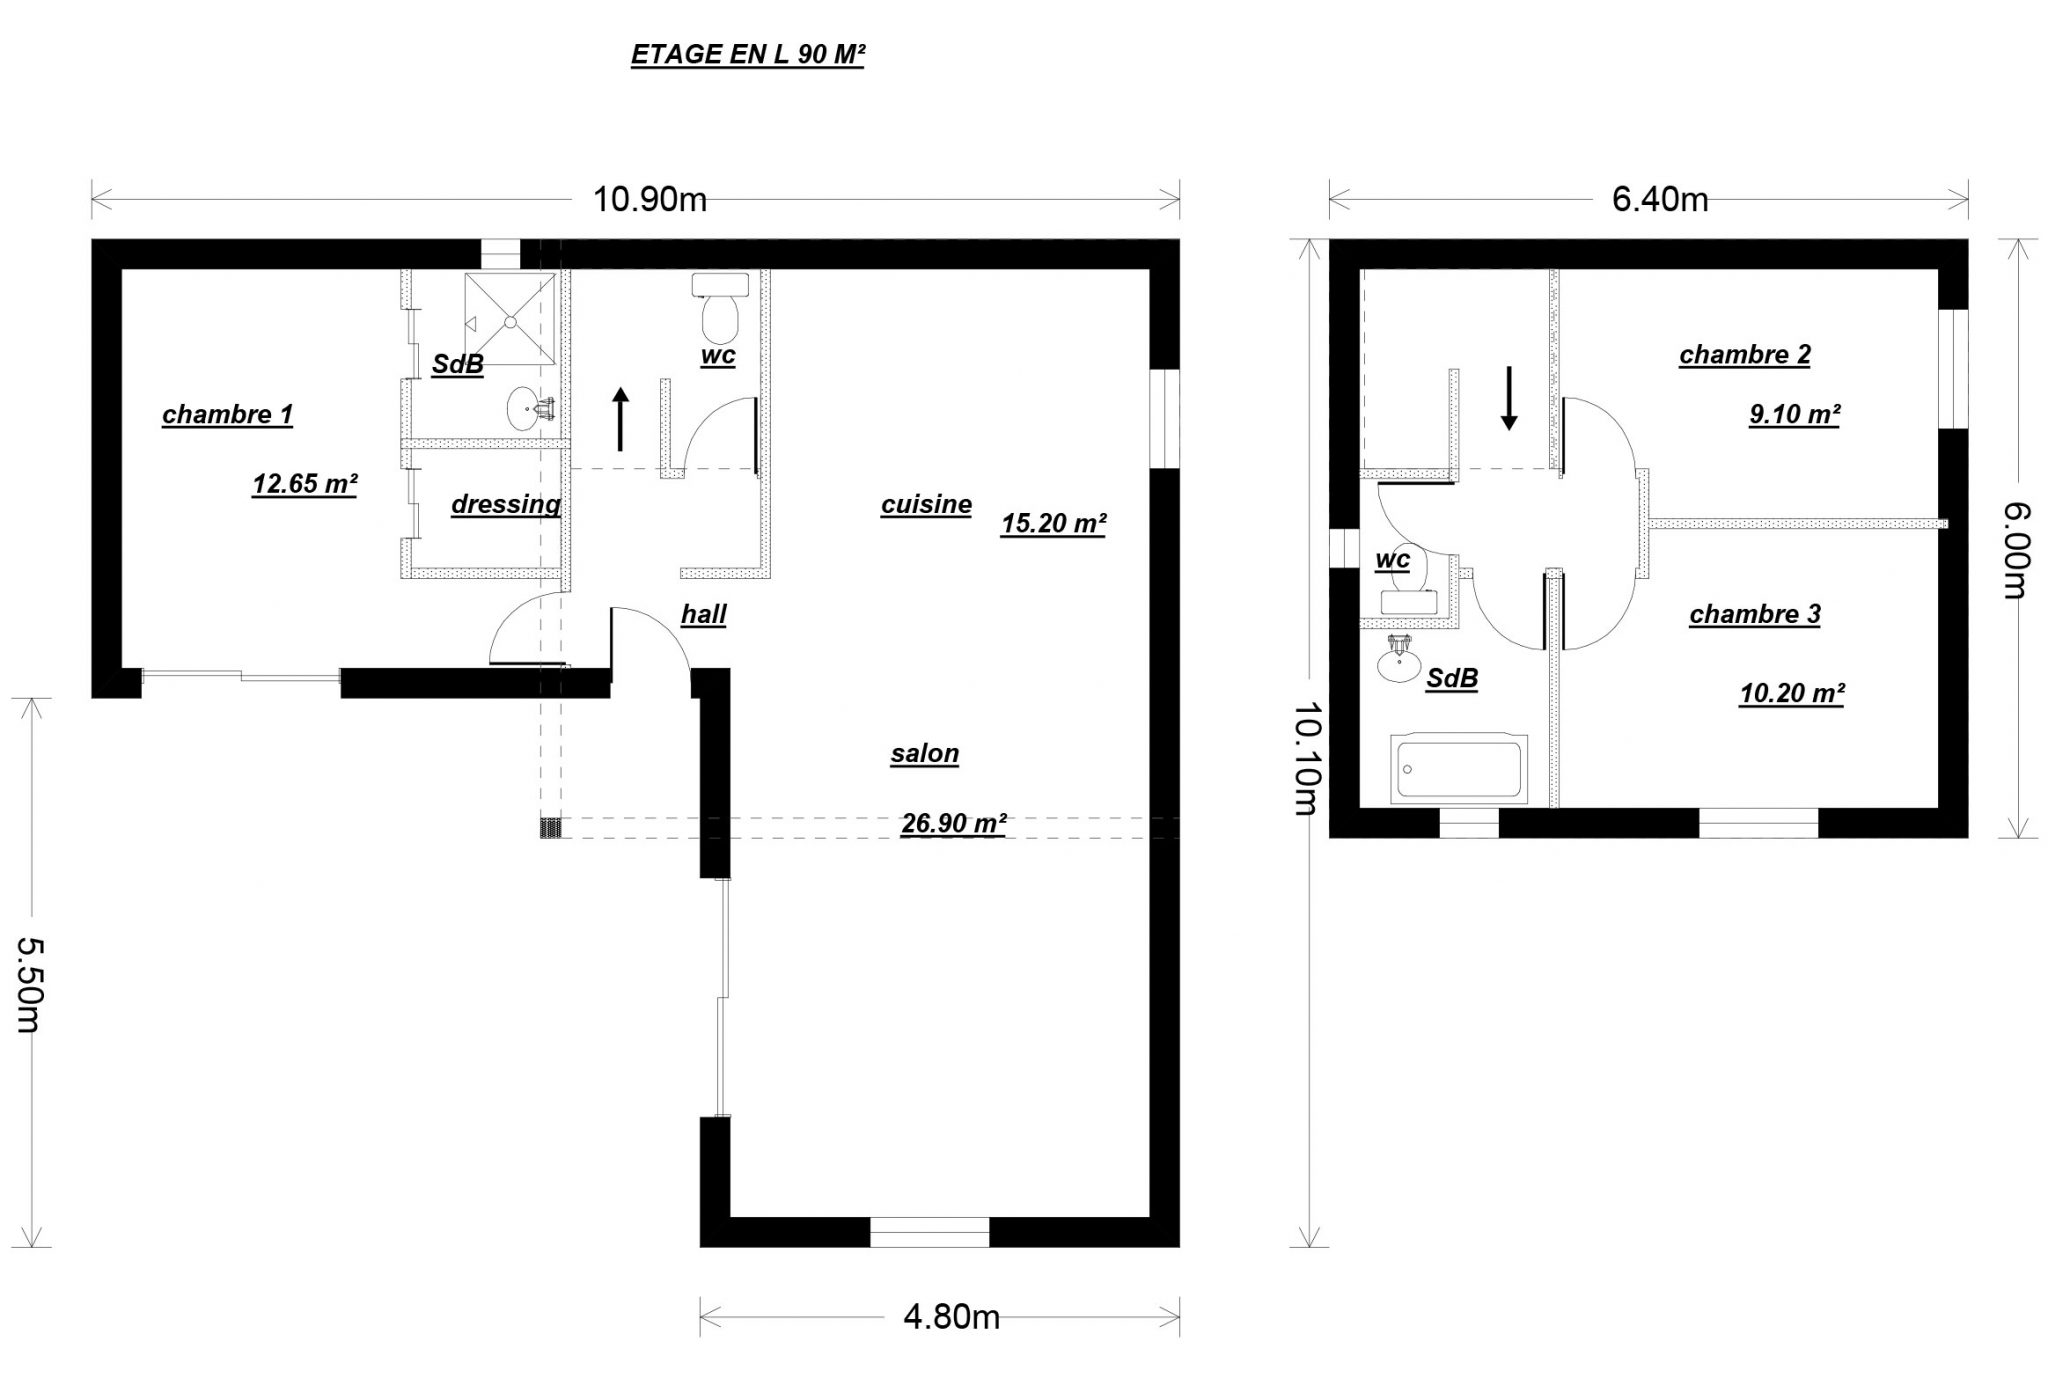 Plan maison etage en l mc immo for Plan de maison 90m2